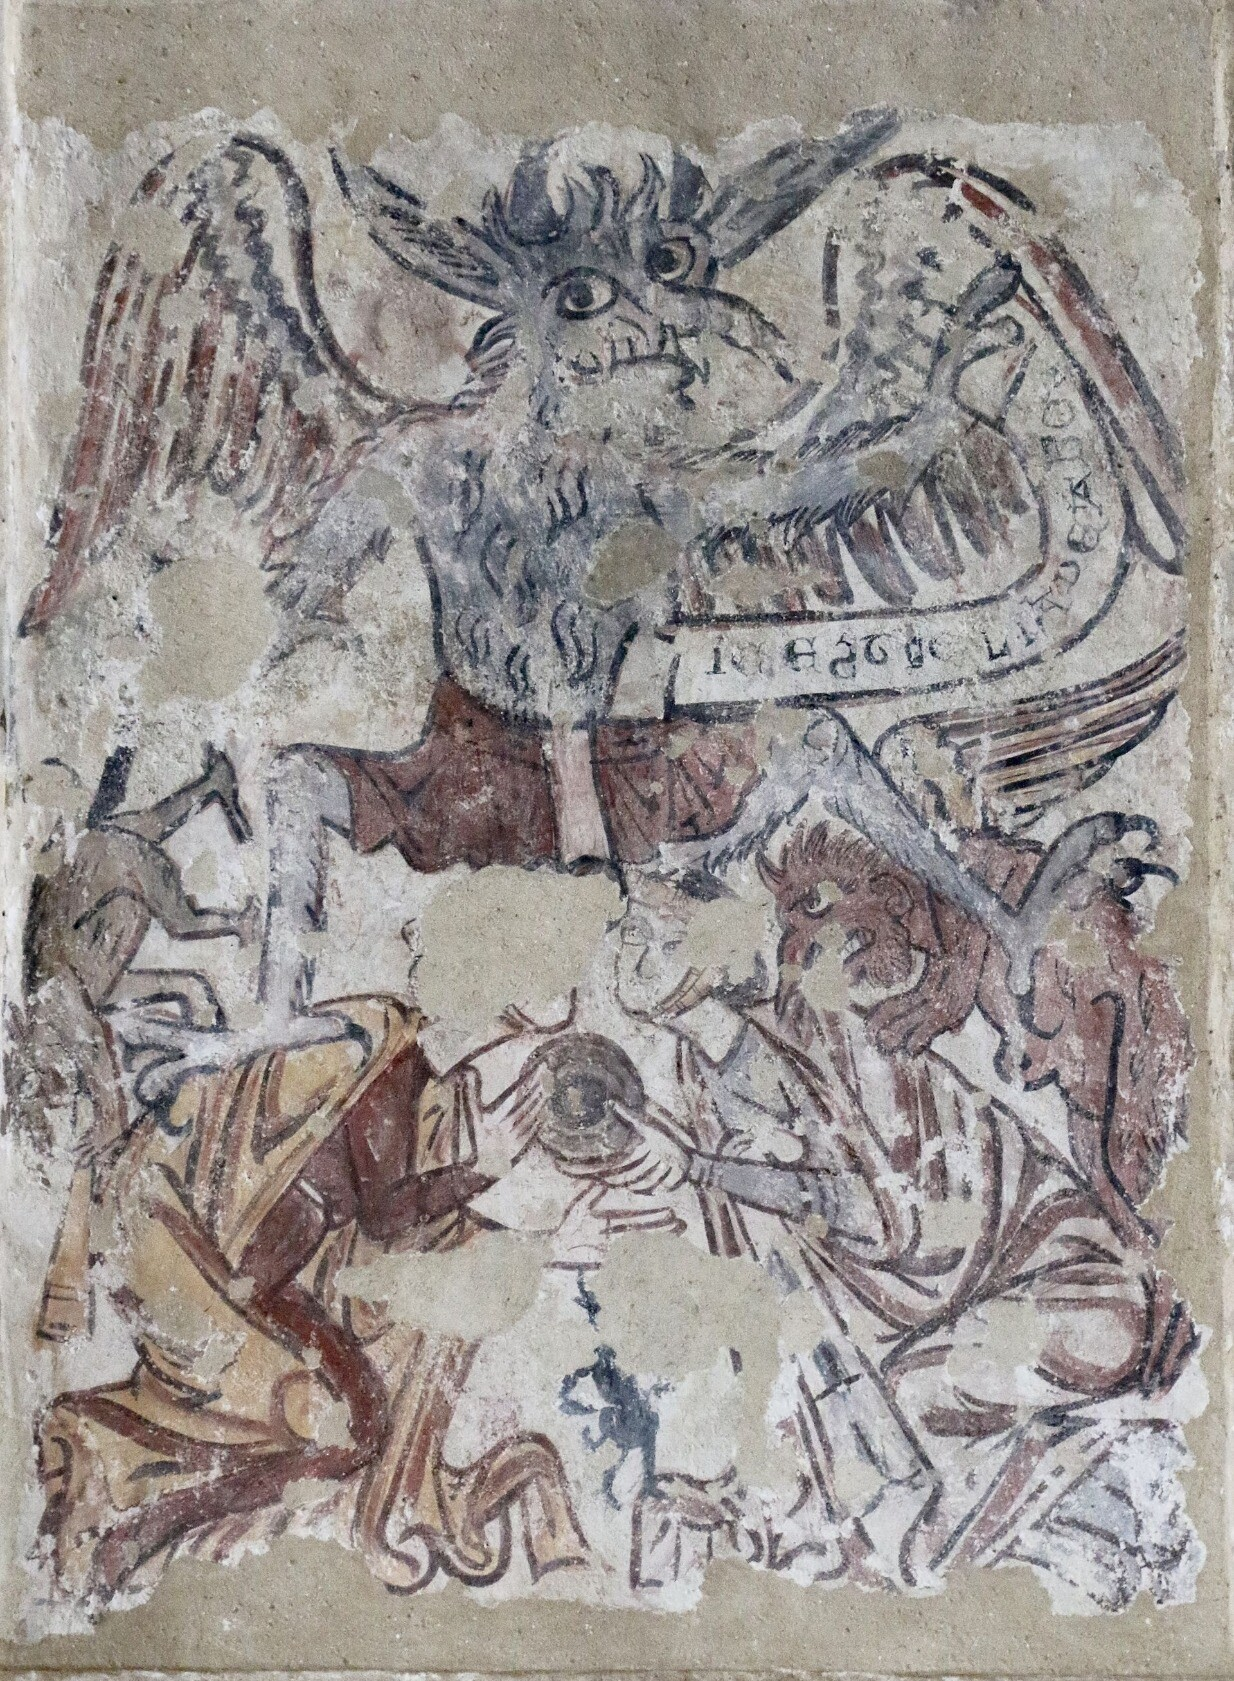 Source inspiration for the digital artwork of Titivillus. Here, he is depicted in a medieval wall painting corroded by time. He has talons, wings, and cool pants. He rules over two lesser demons who have perched on the backs of gossiping women.